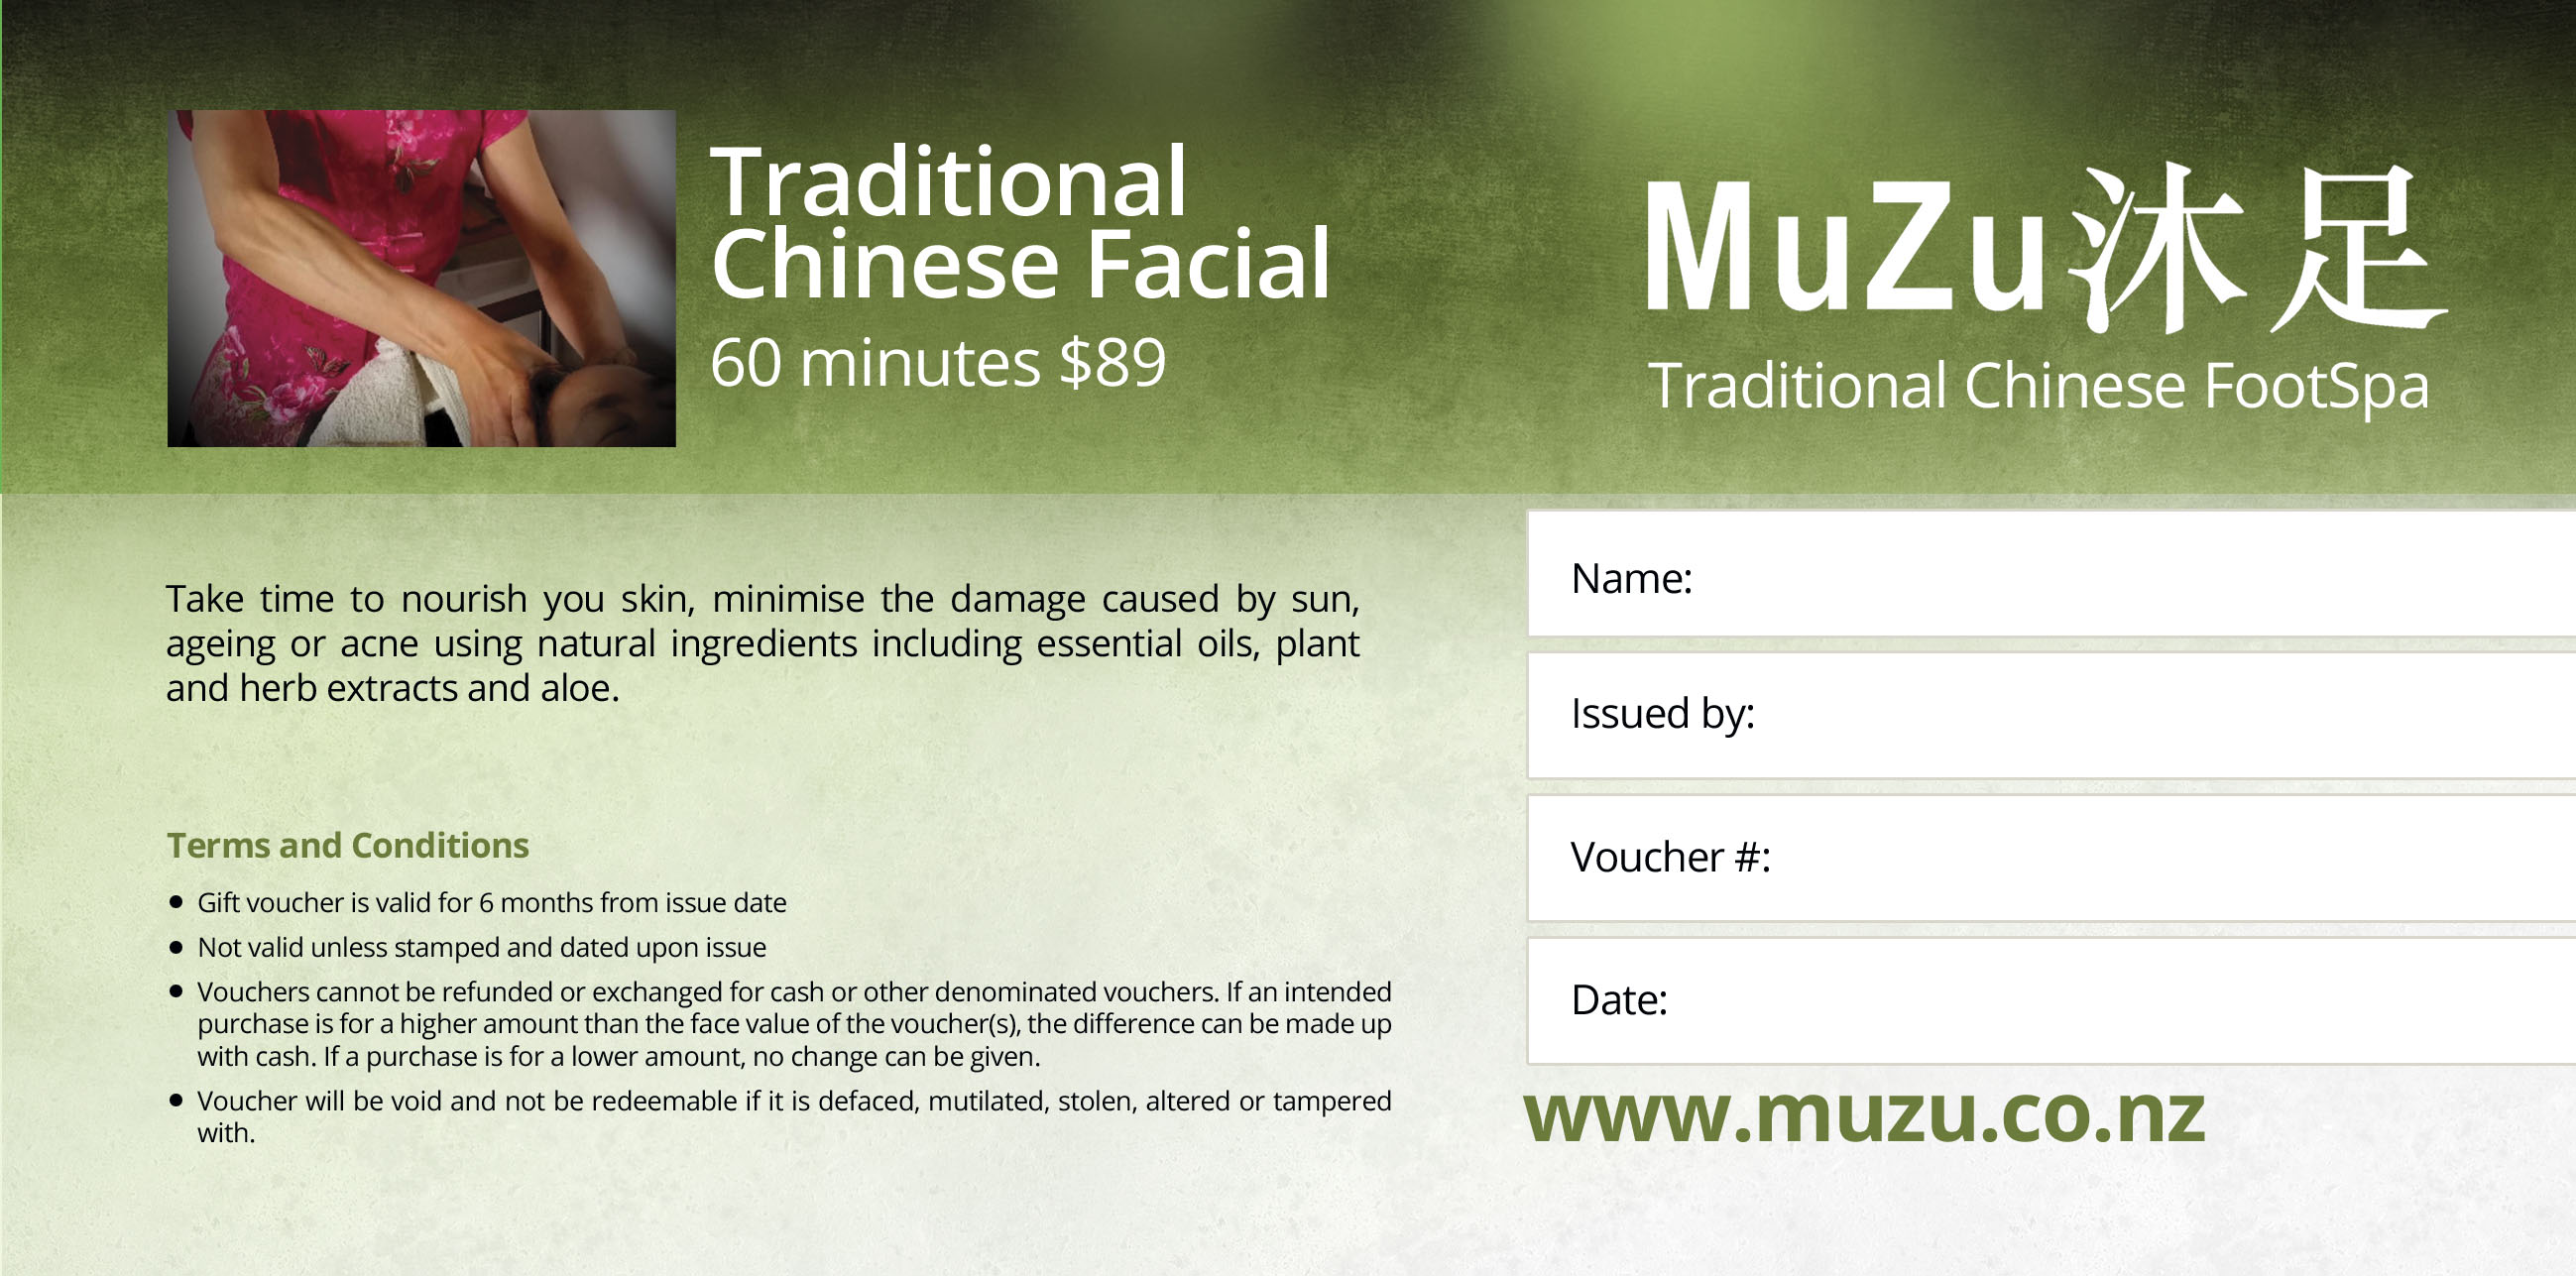 Traditional Chinese Facial